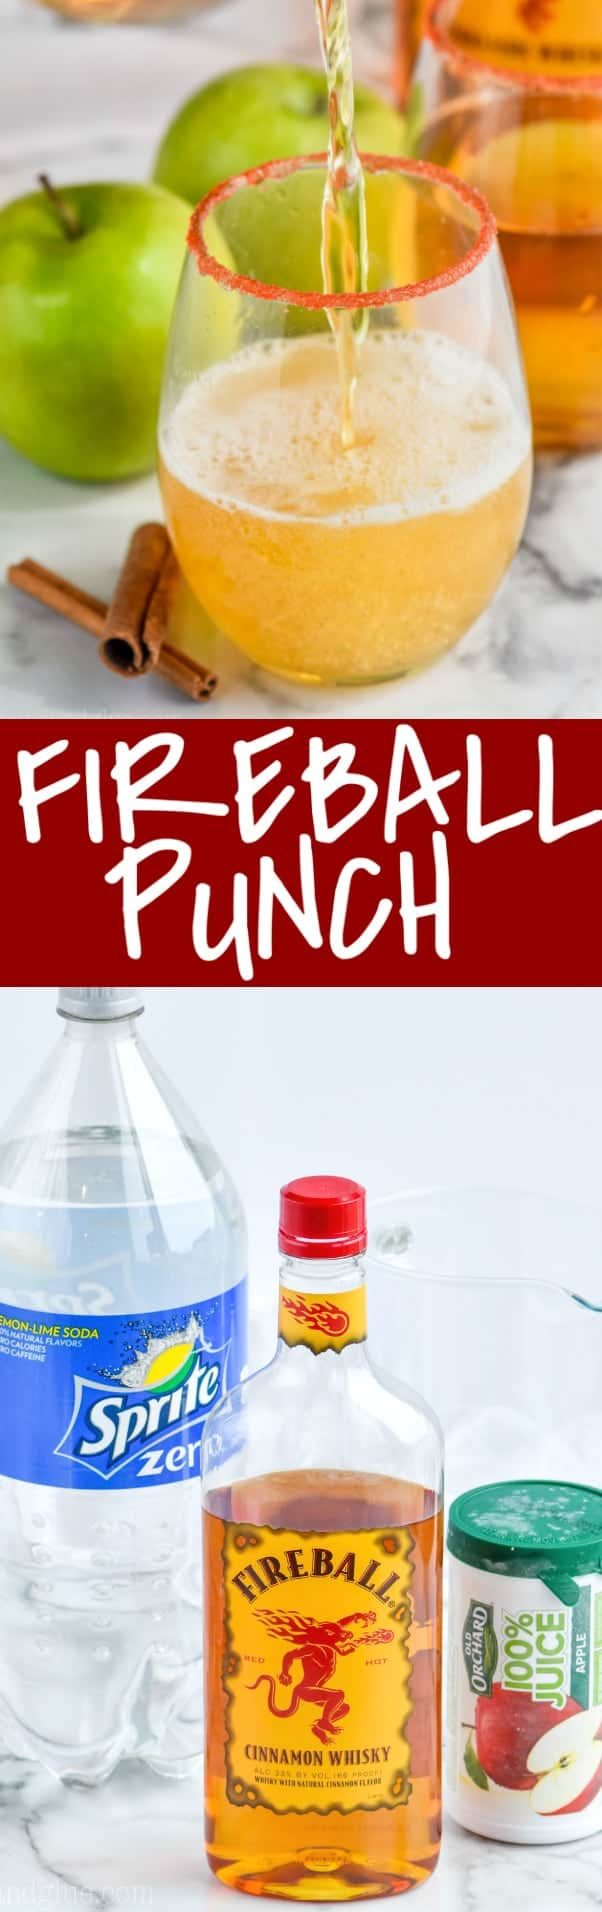 fireball punch being poured into a glass